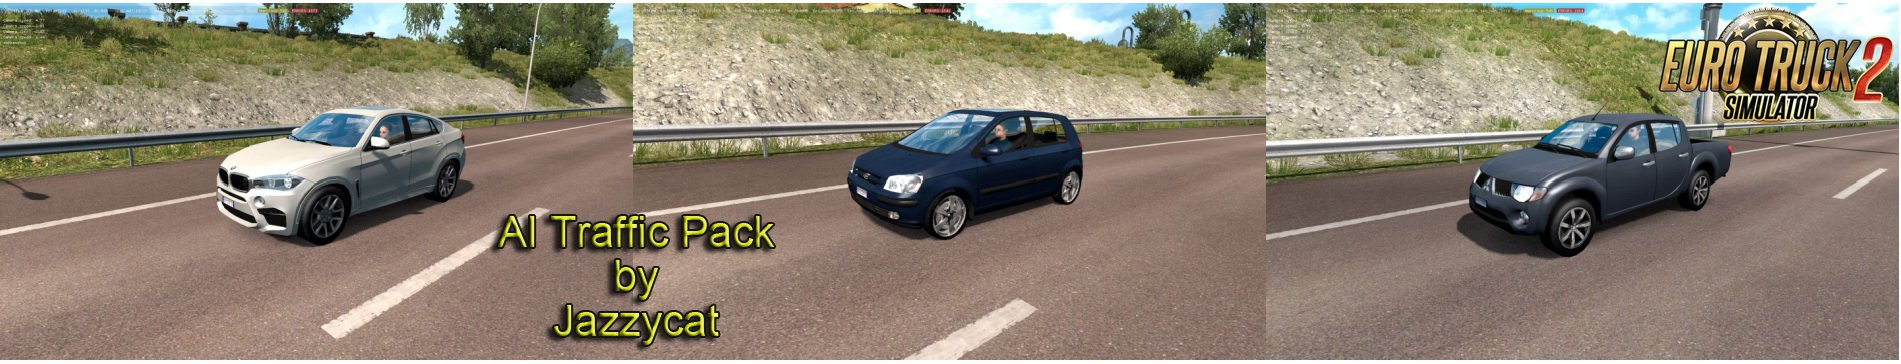 AI Traffic Pack v8.6 by Jazzycat [1.32.x]